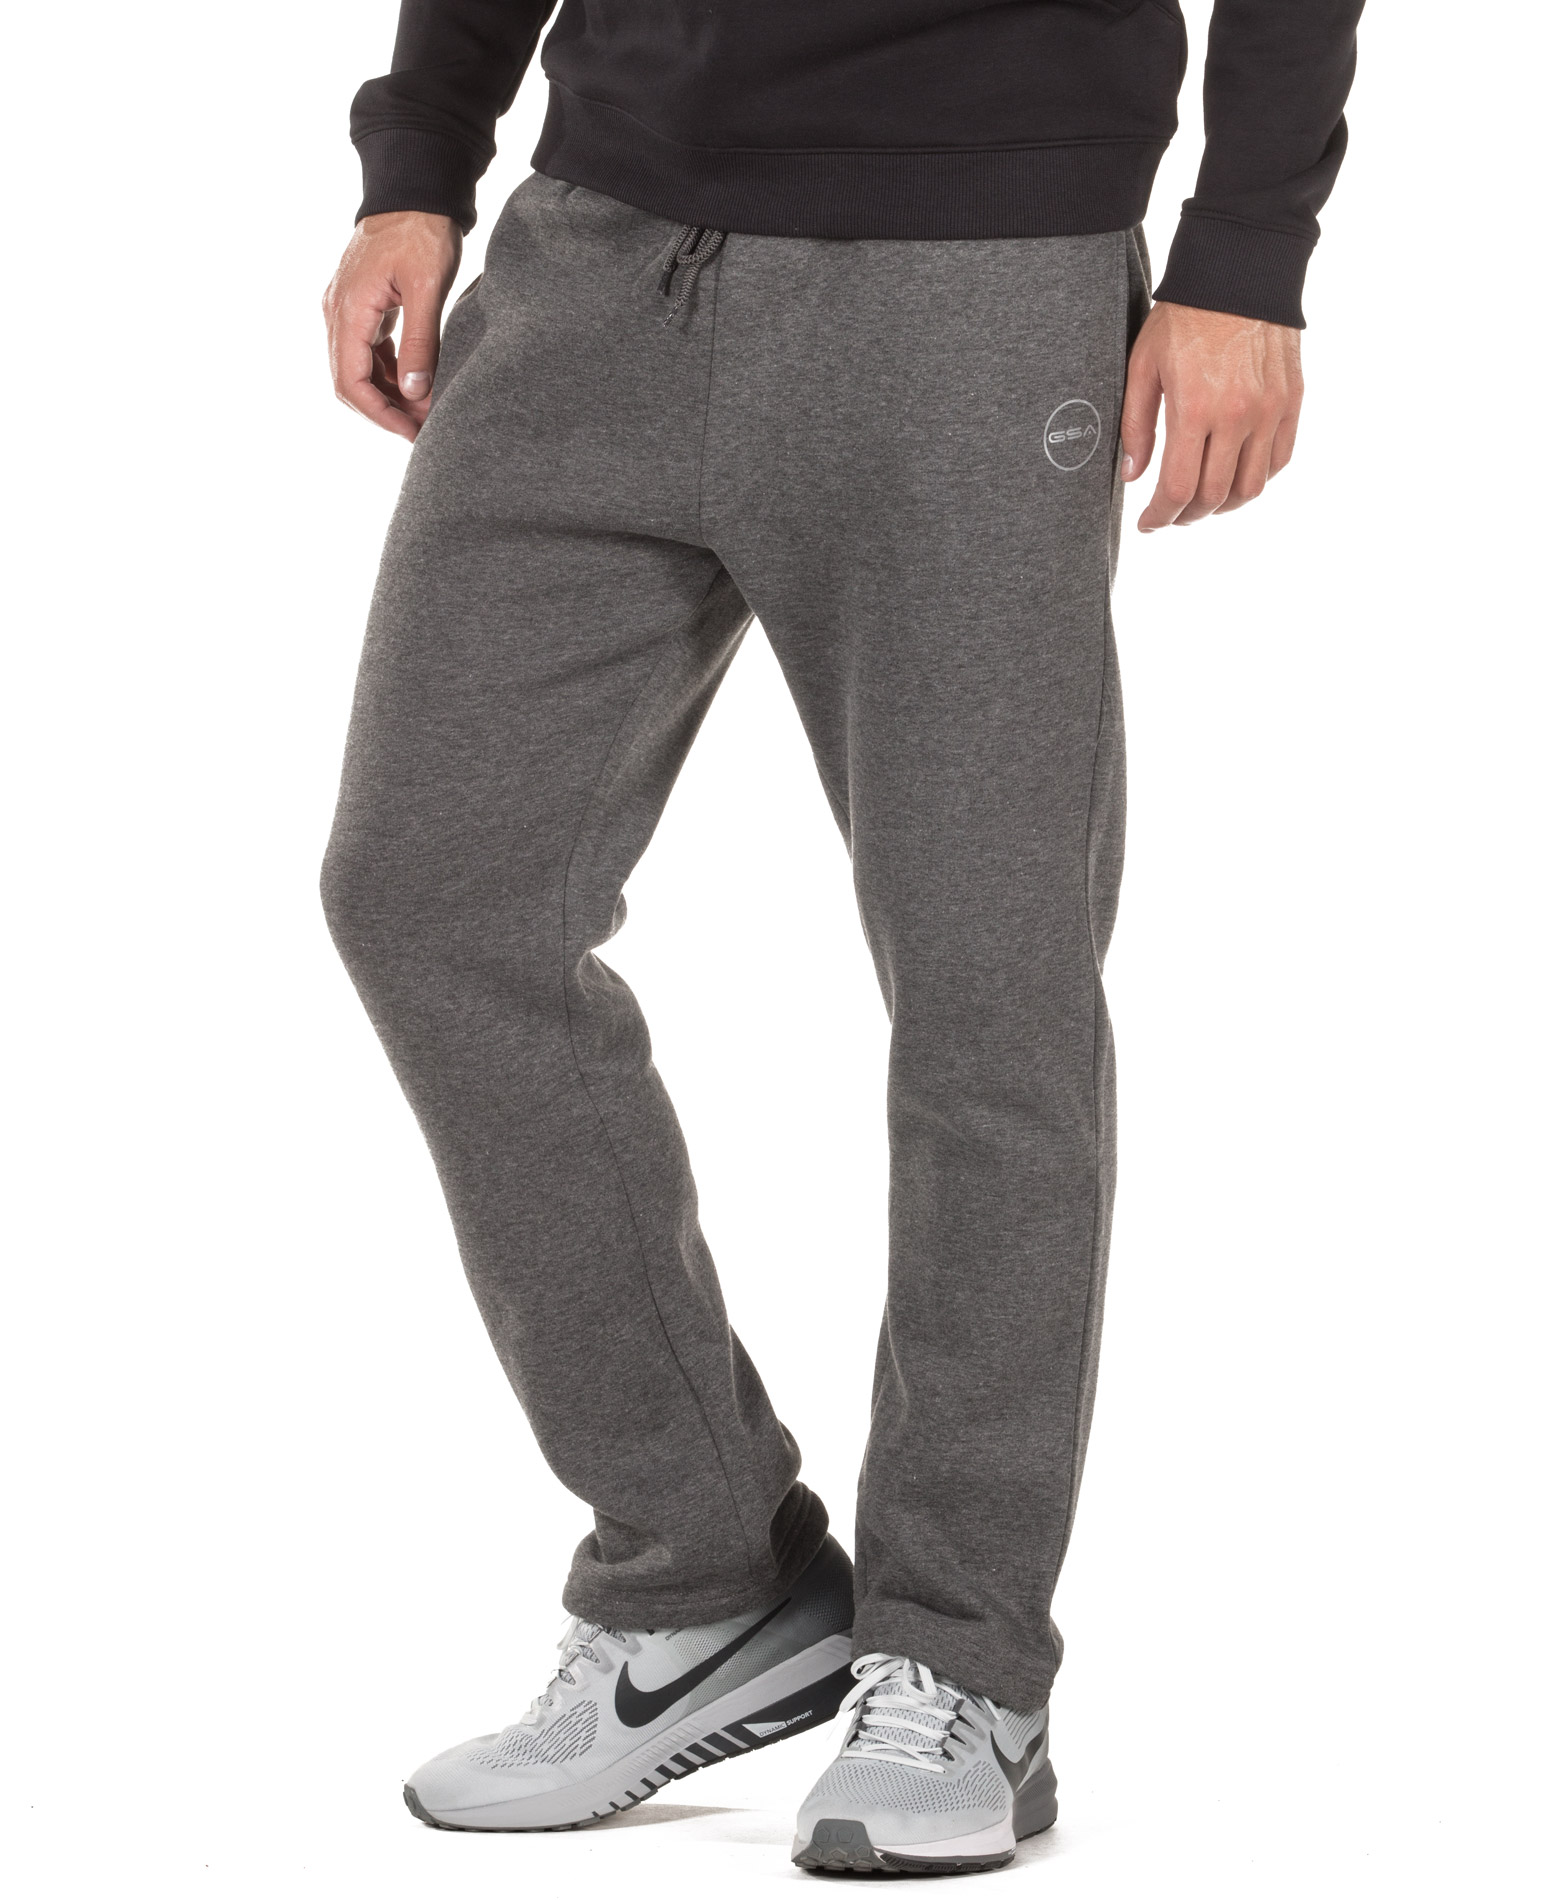 GSA BOOTCUT SWEATPANTS 17-17028-CHARCOAL Ανθρακί